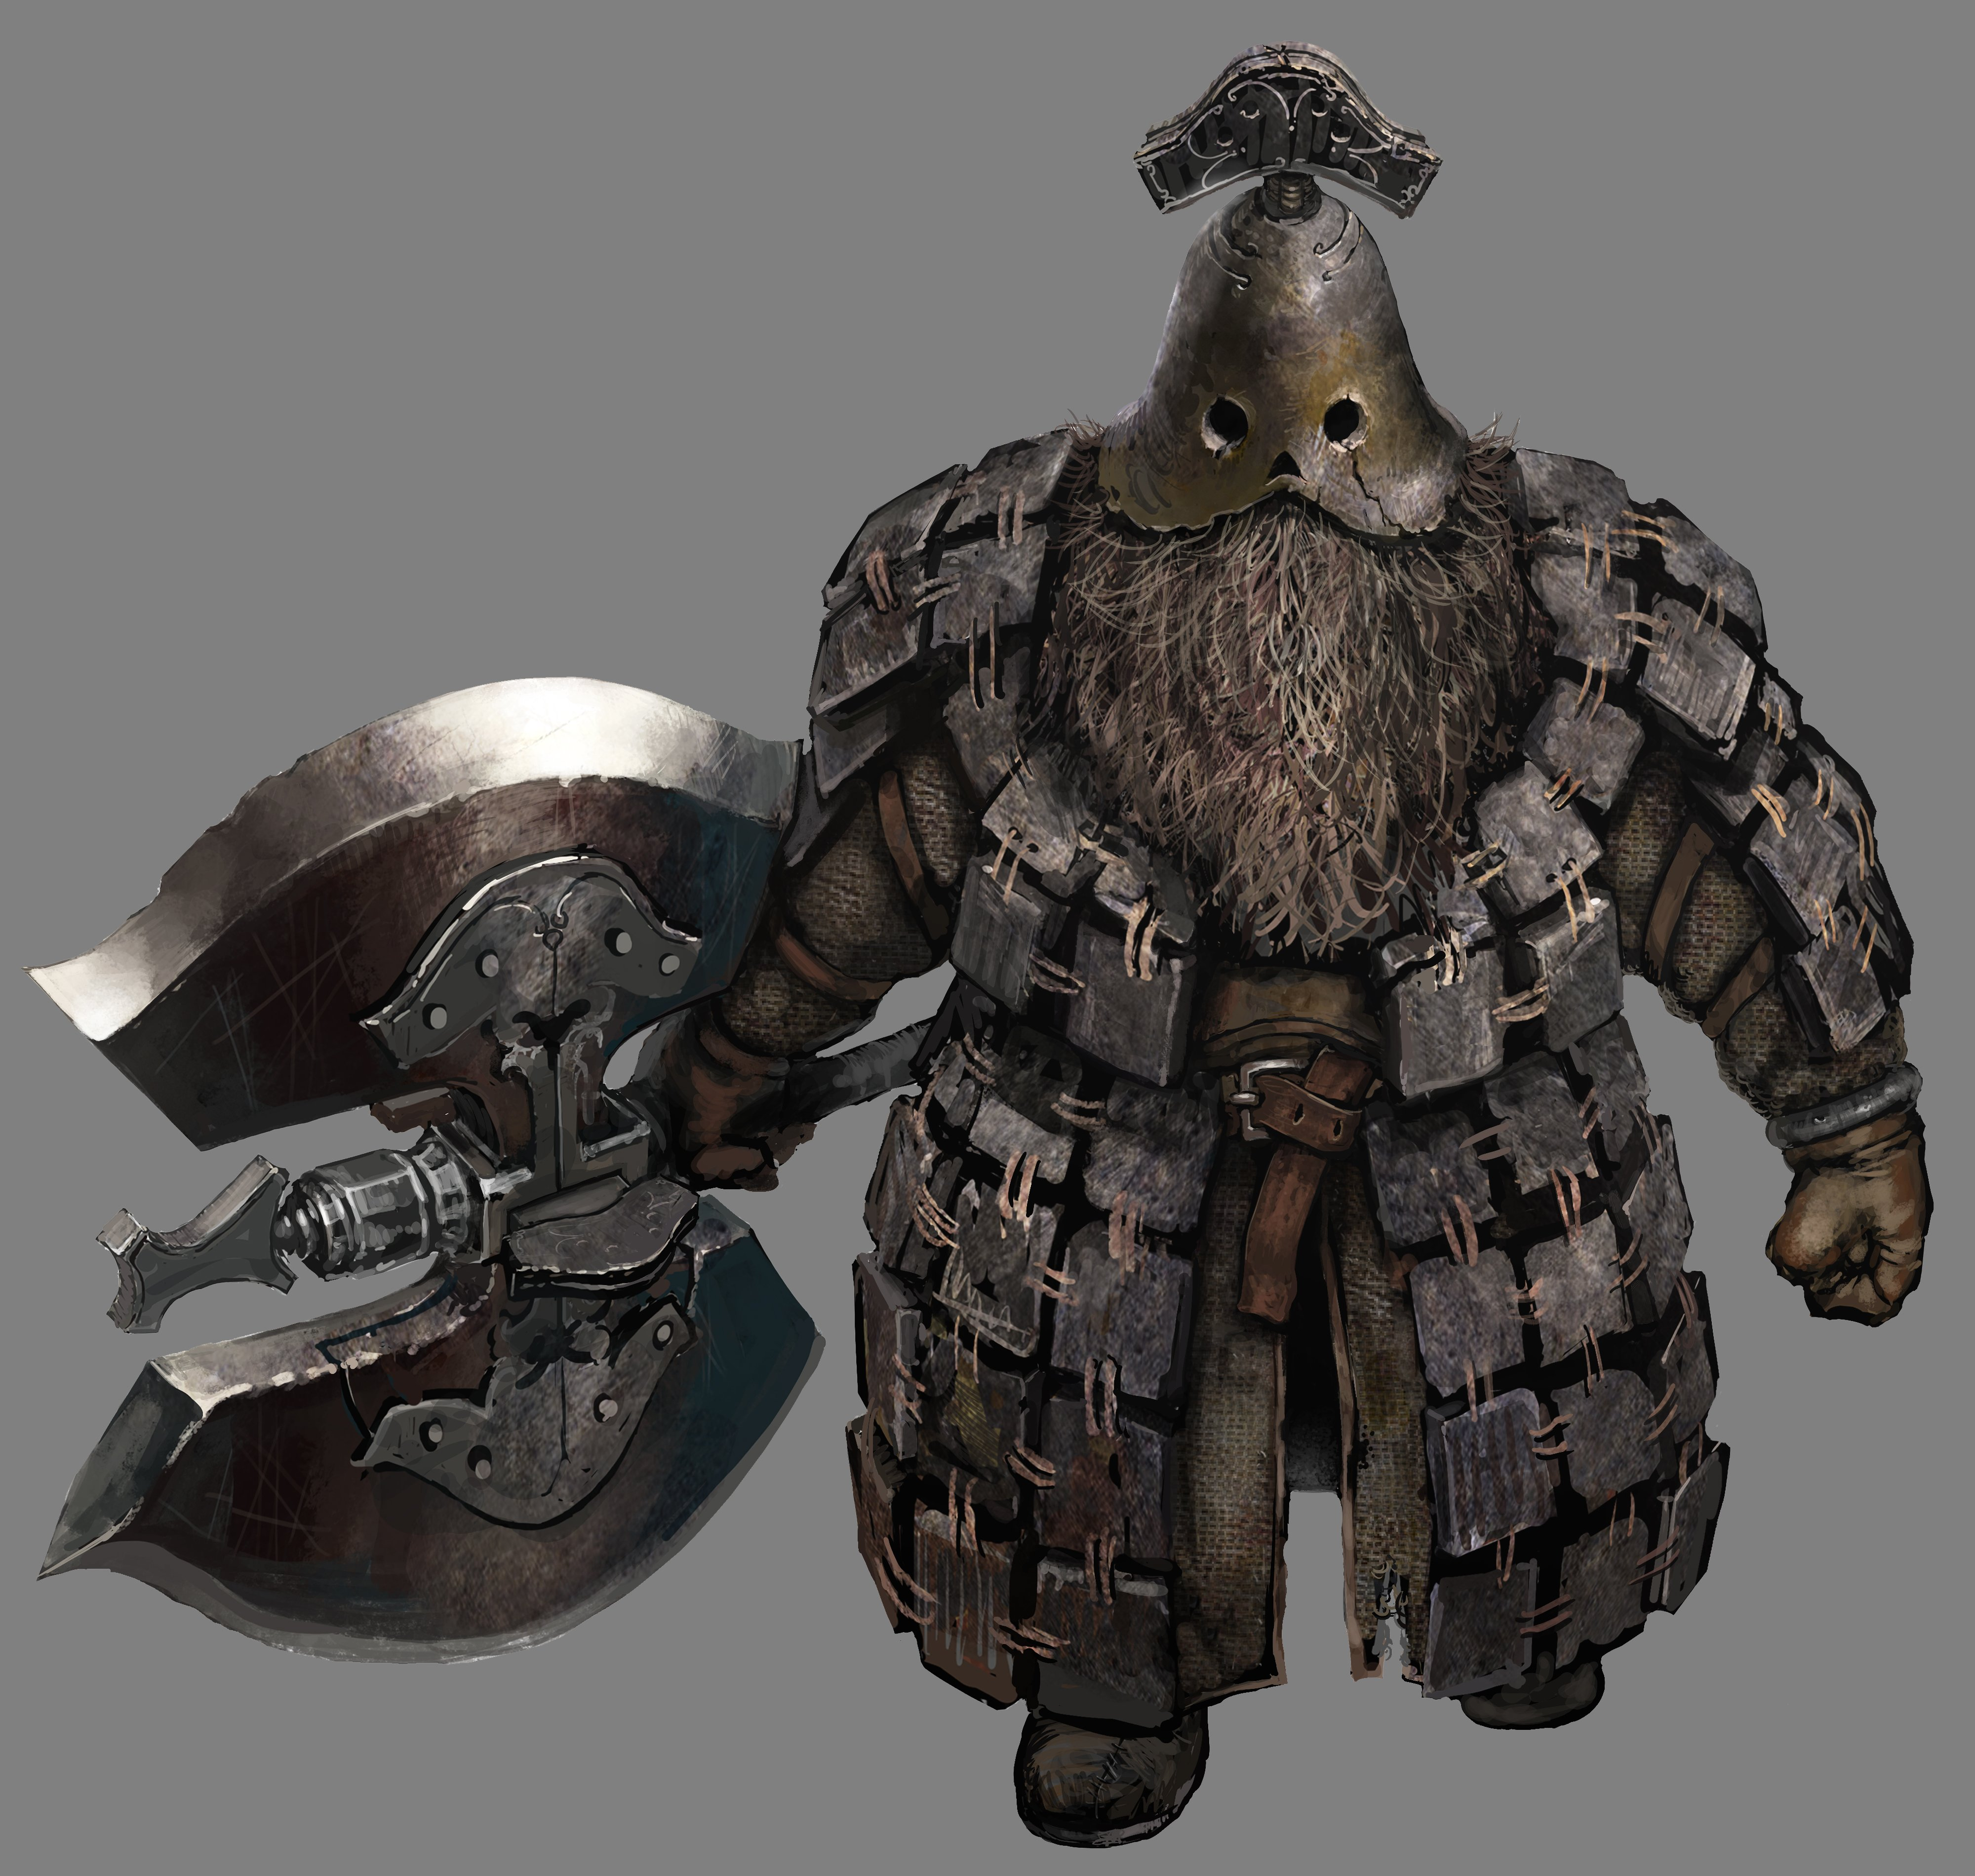 Art-Enemy-Dwarf.jpg